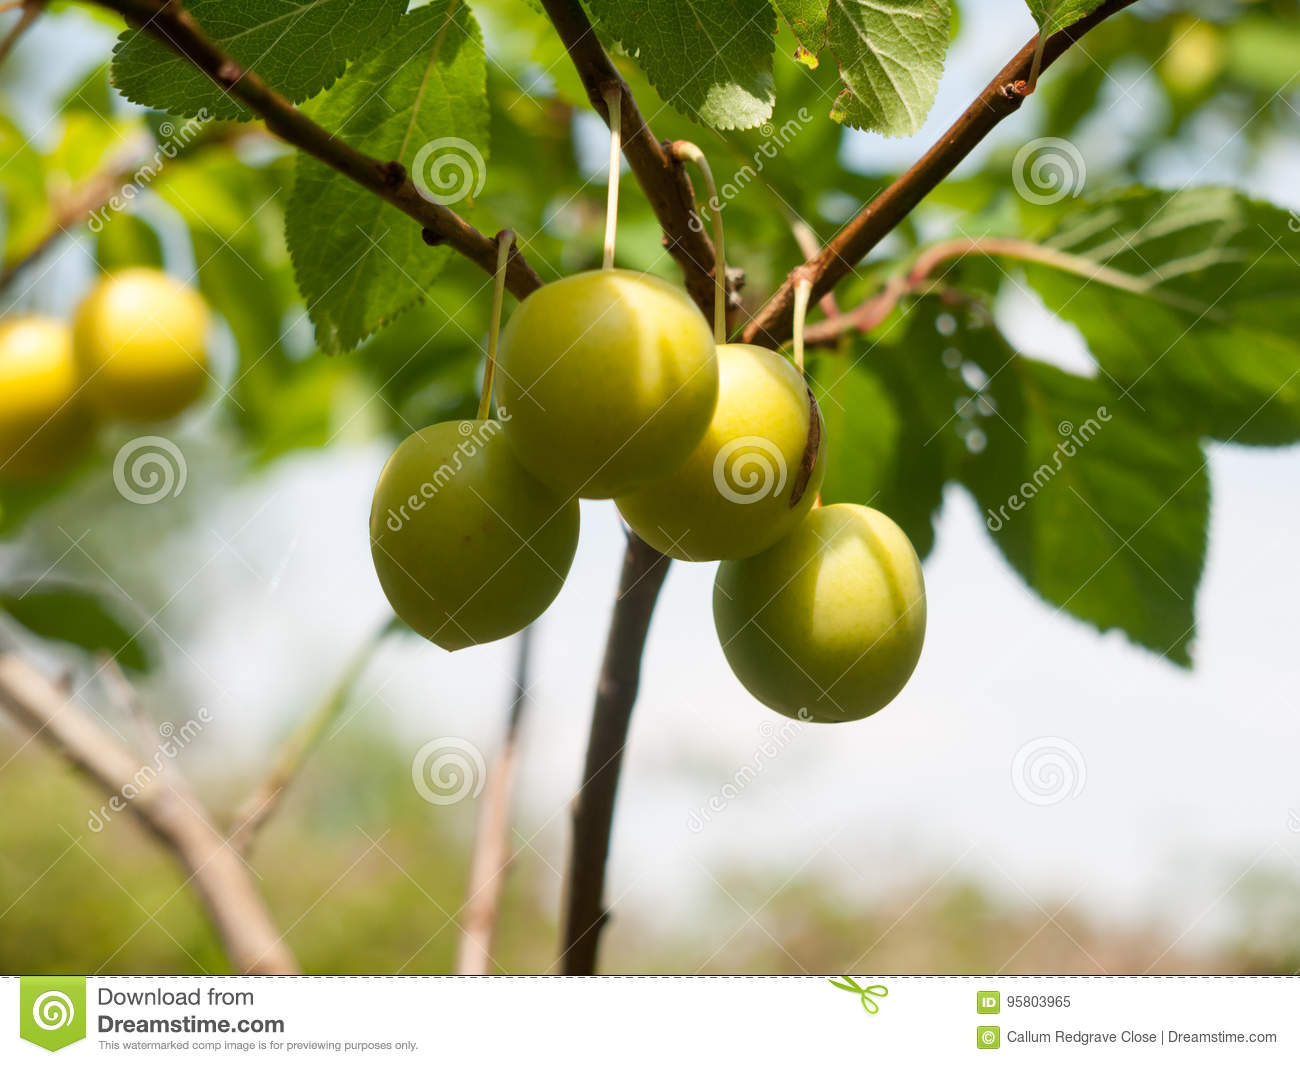 Wild Close Up Growing Gage Plums on Tree